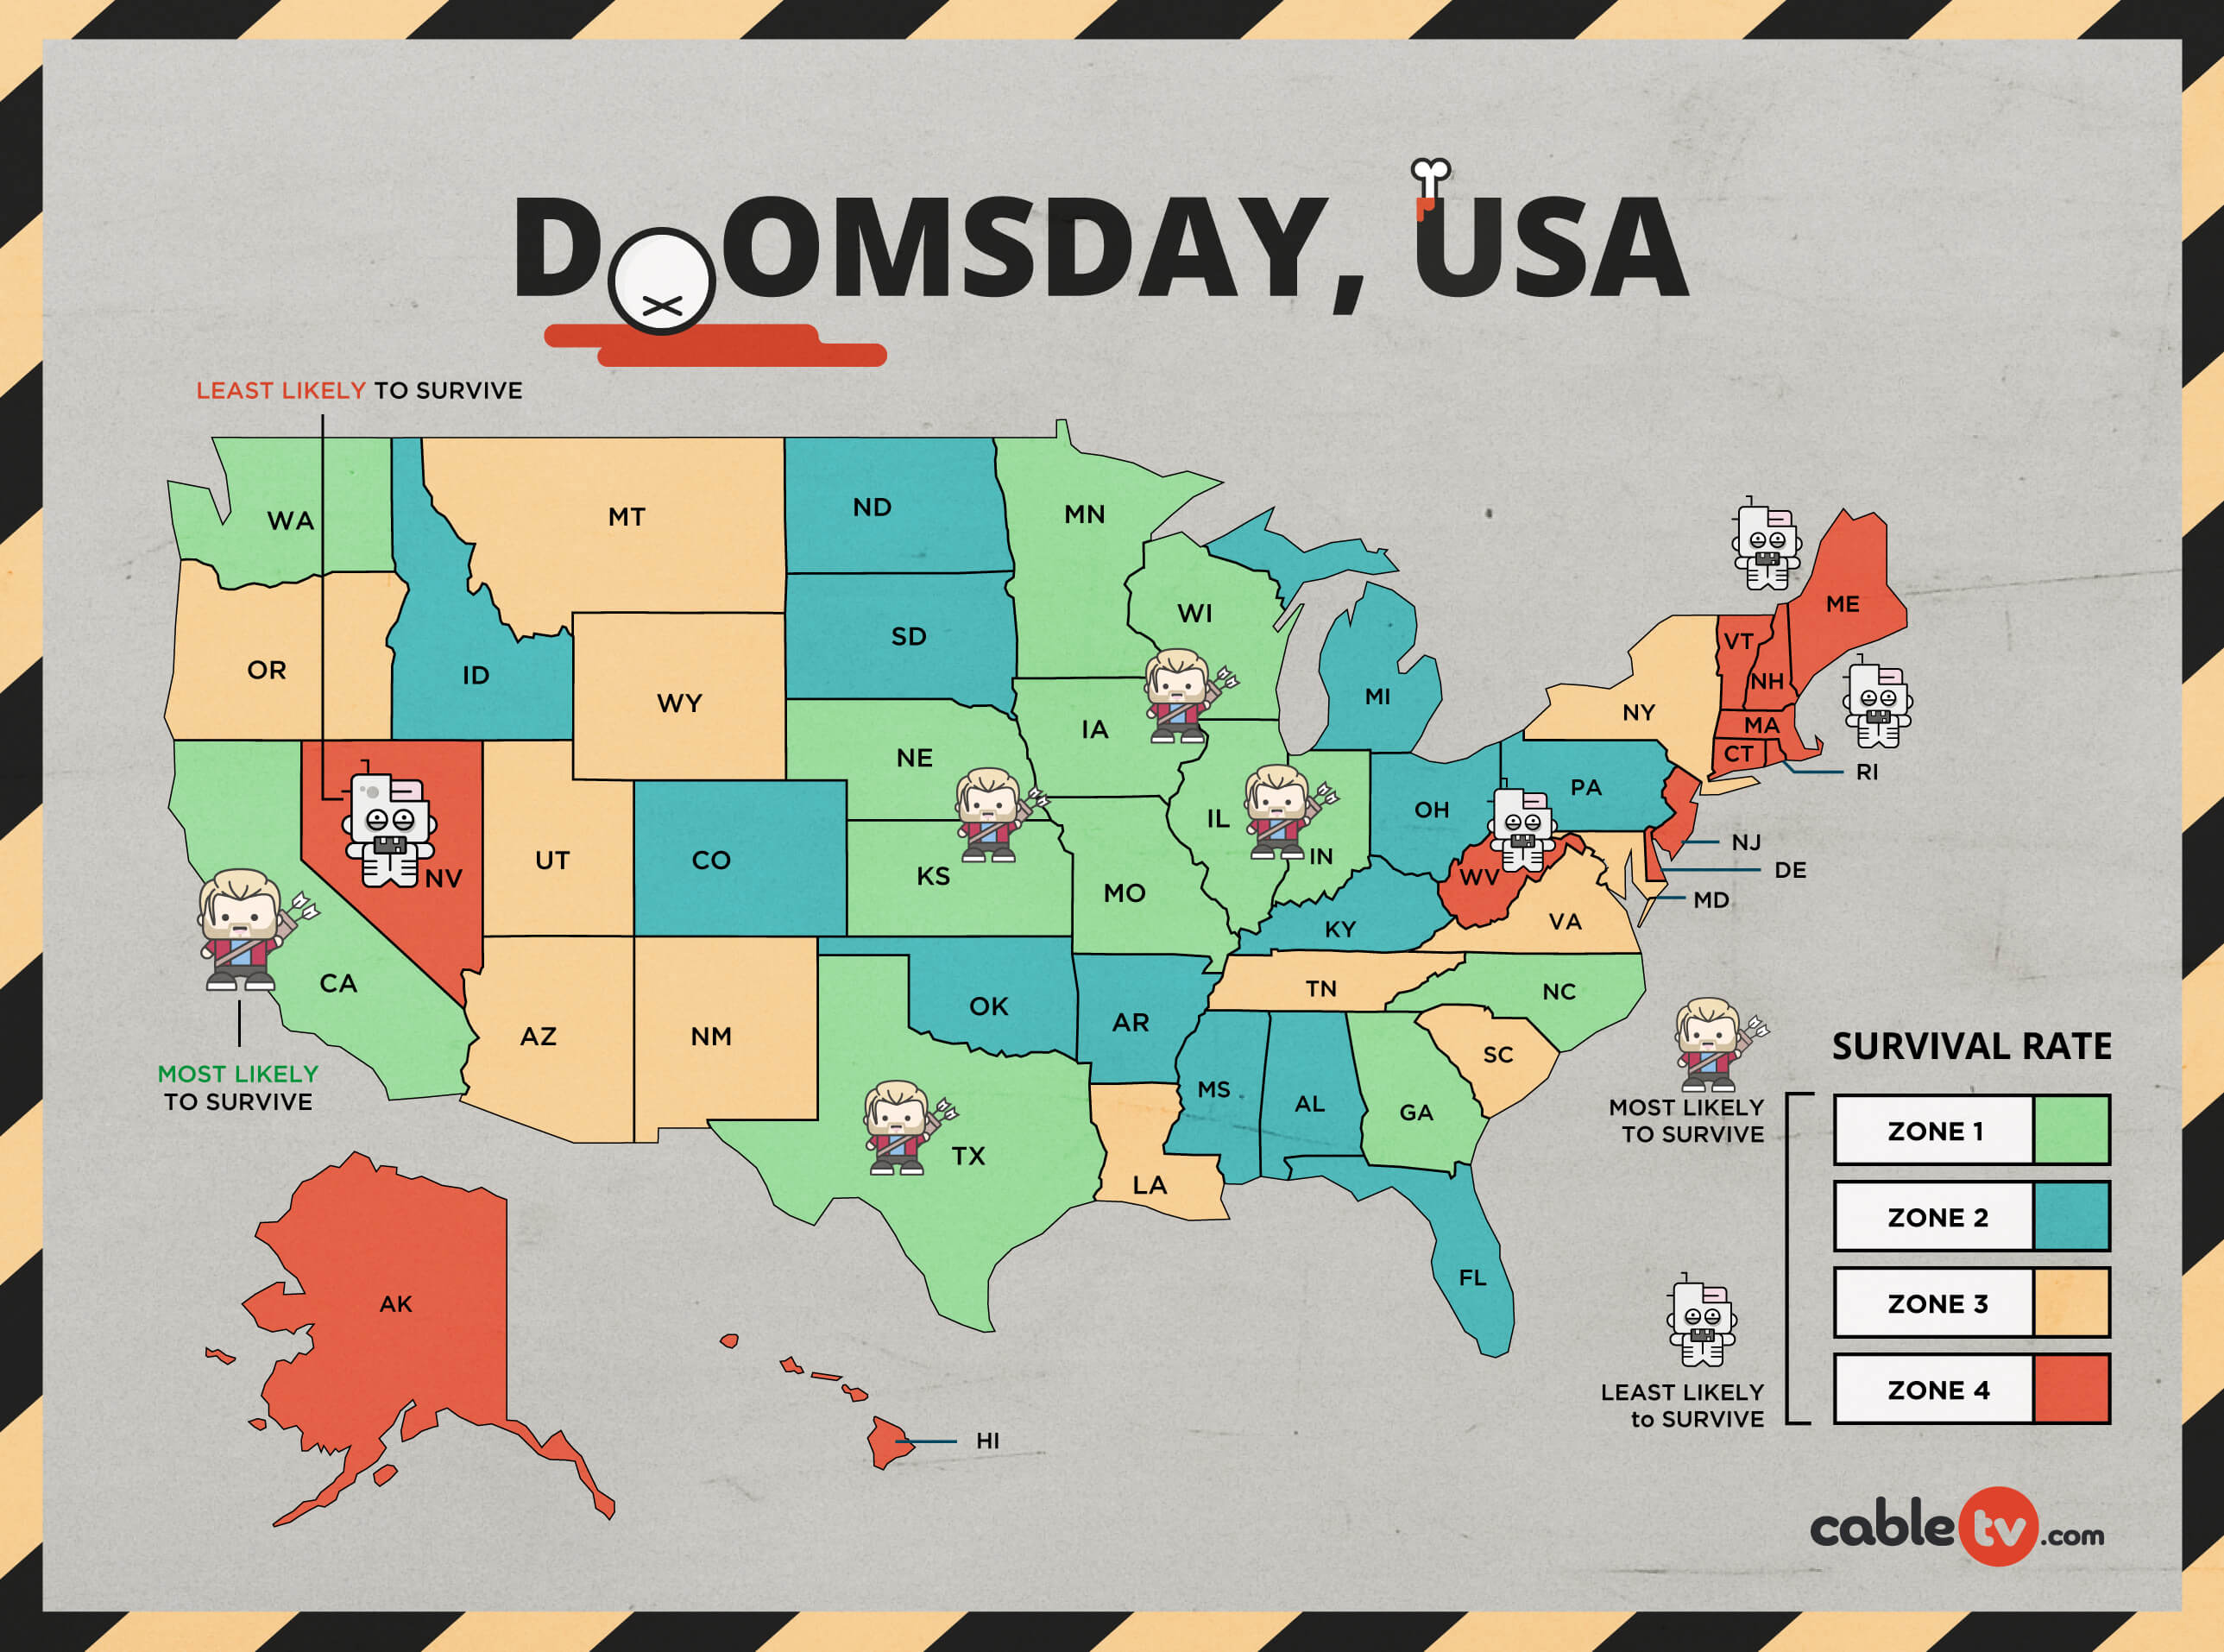 Which States Will Survive the Apocalypse? | CableTV.com on zombie assault game, zombie daniel, zombie apocalypse, zombie survival tips, zombie devil, zombie apocolypse, zombie movies, zombie costumes, zombie doomsday,